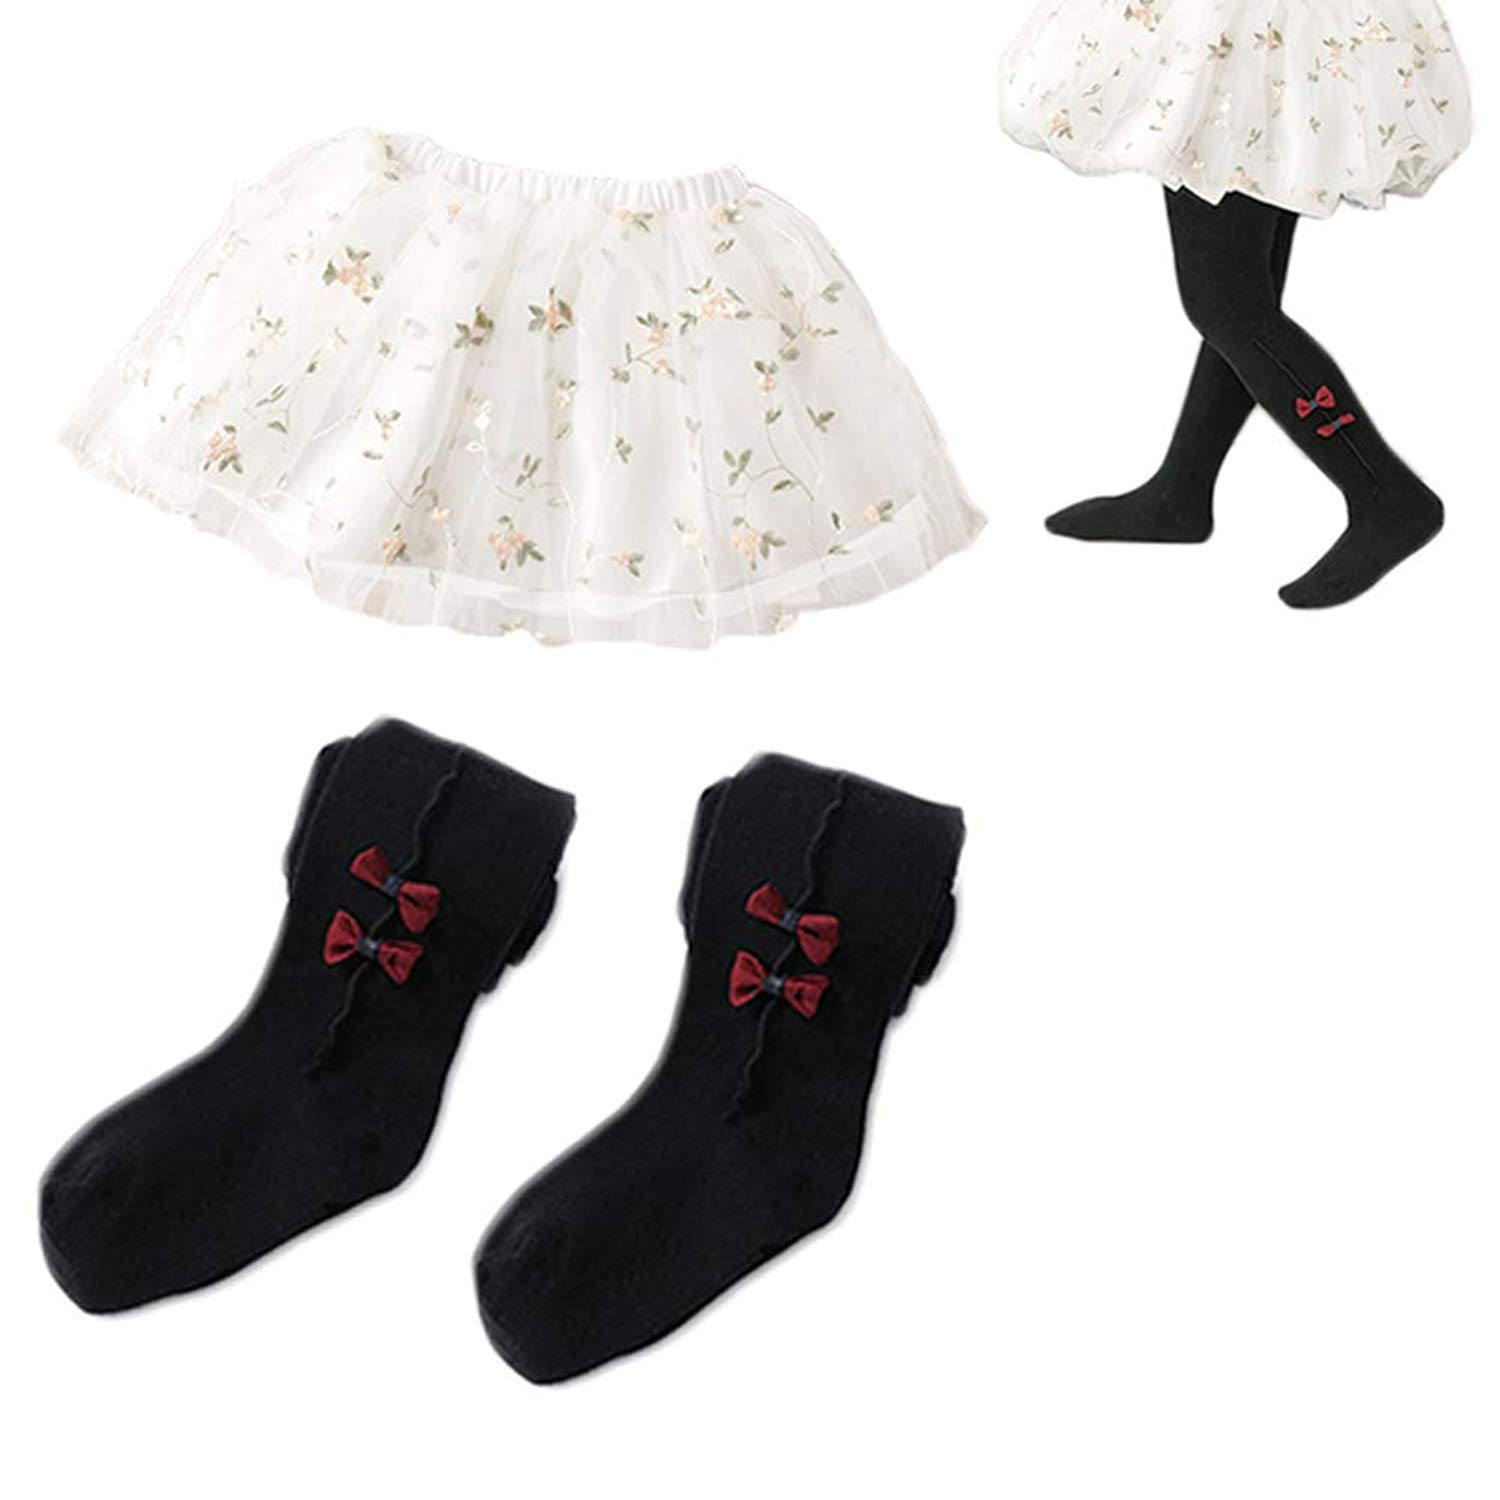 027abe76276 Get Quotations · Gracmyron Baby Girl 3 Layer Tulle Tutu Skirt, Leggings  Pants Stockings Tights Panties for 6M